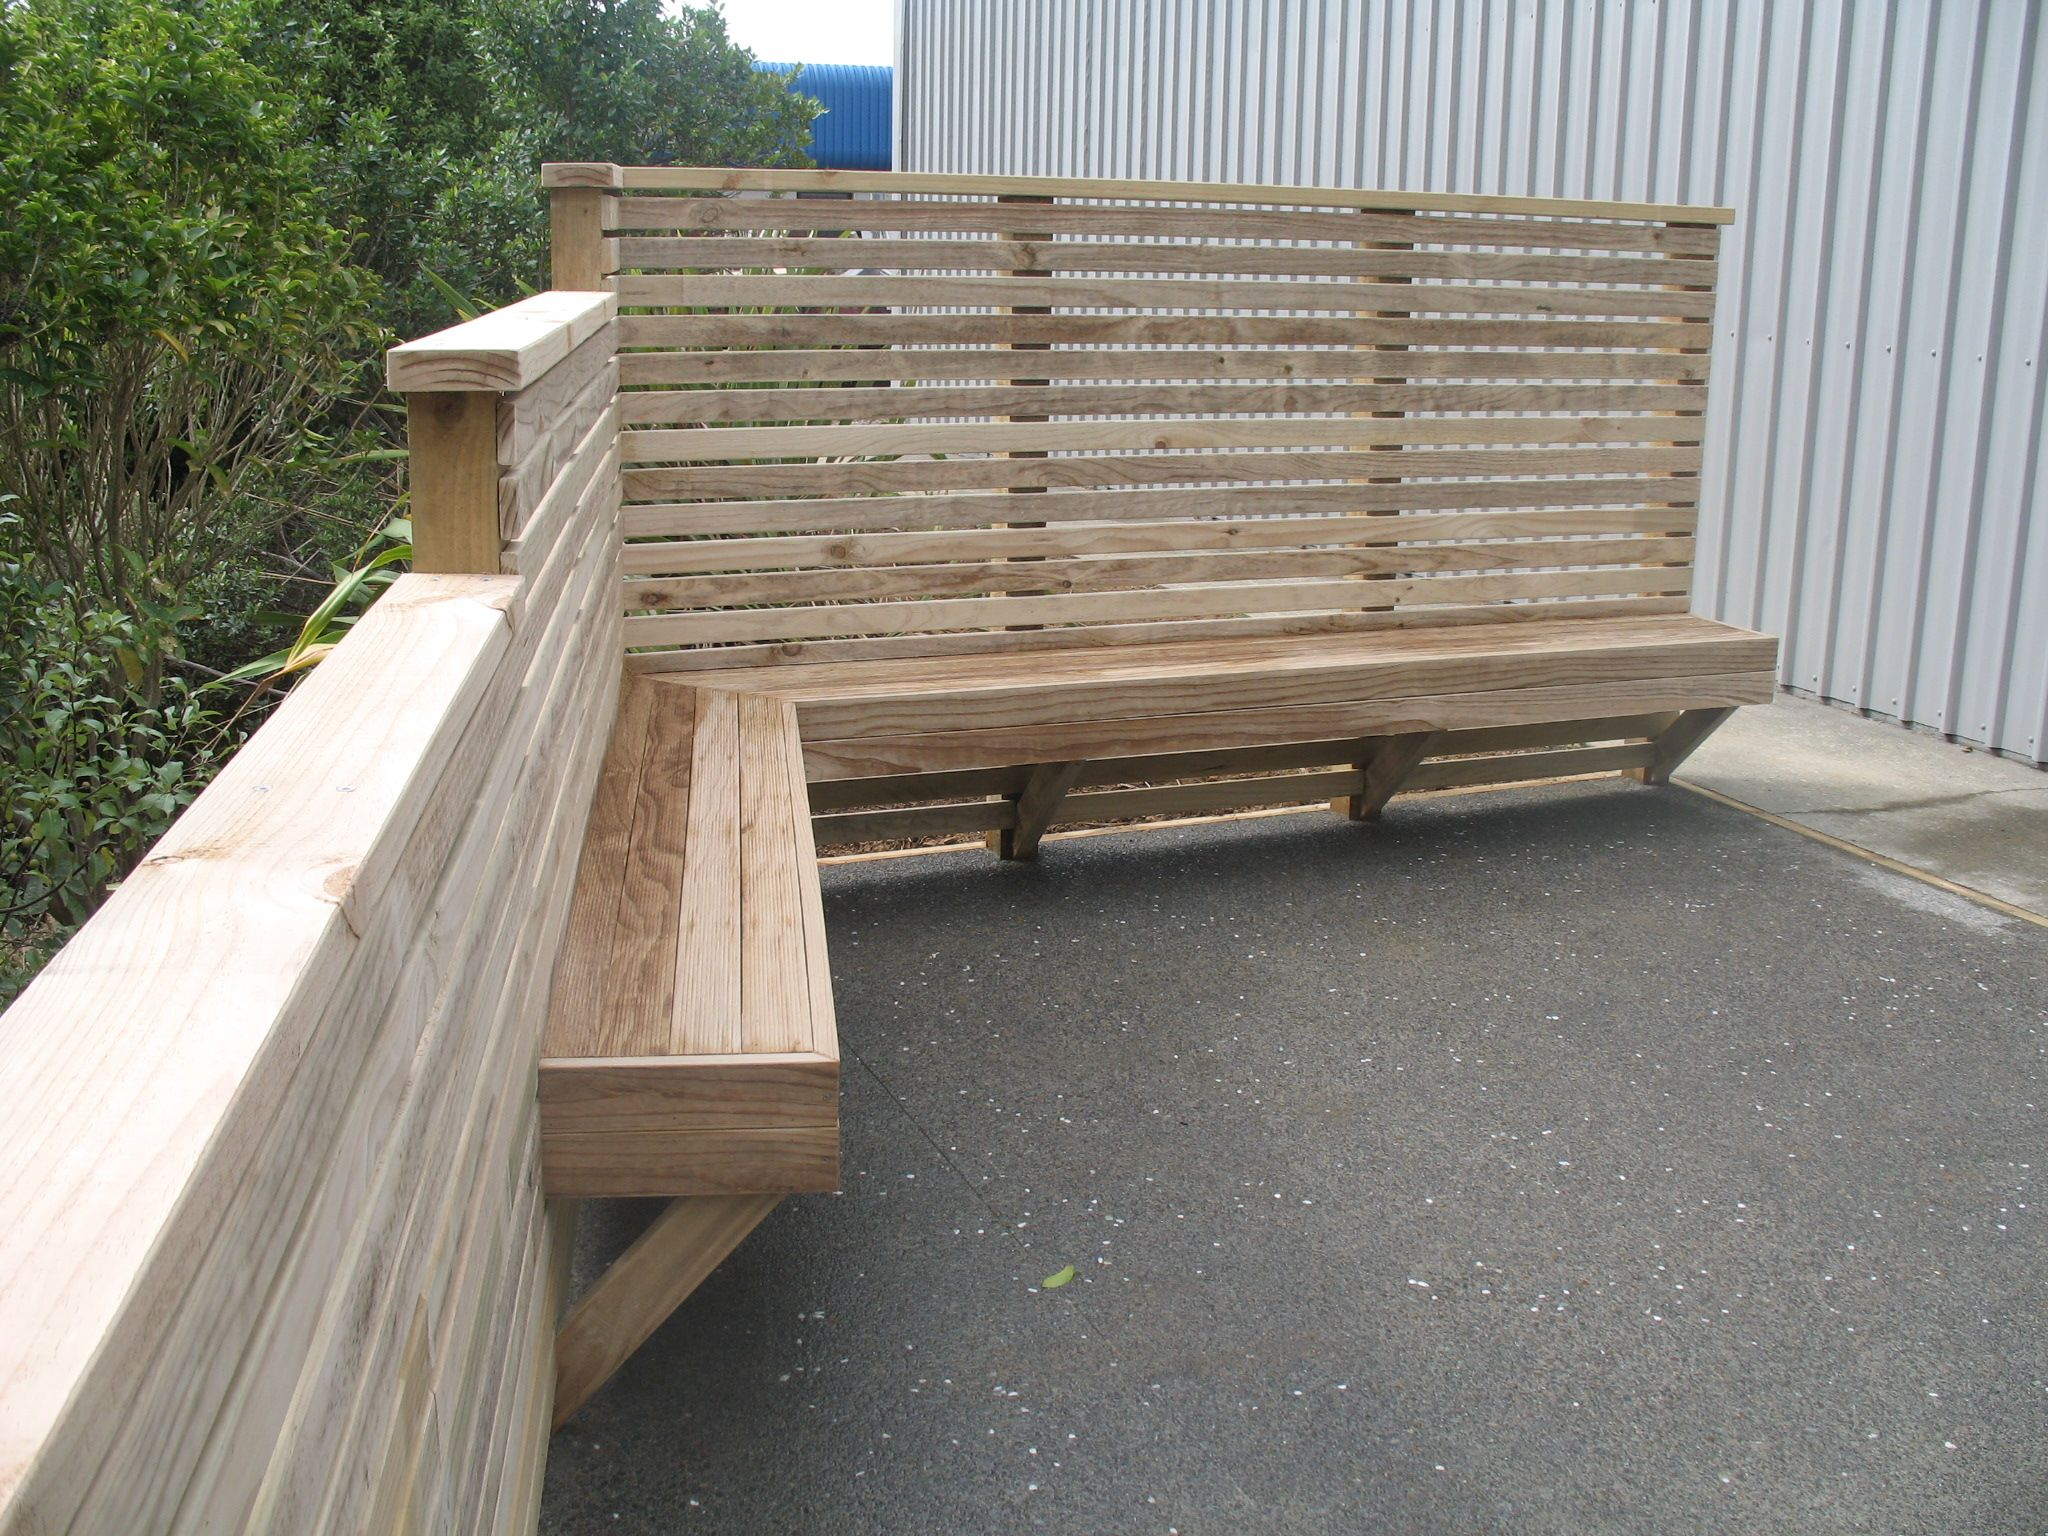 Fence and bench seat Diy backyard fence, Relaxing patio